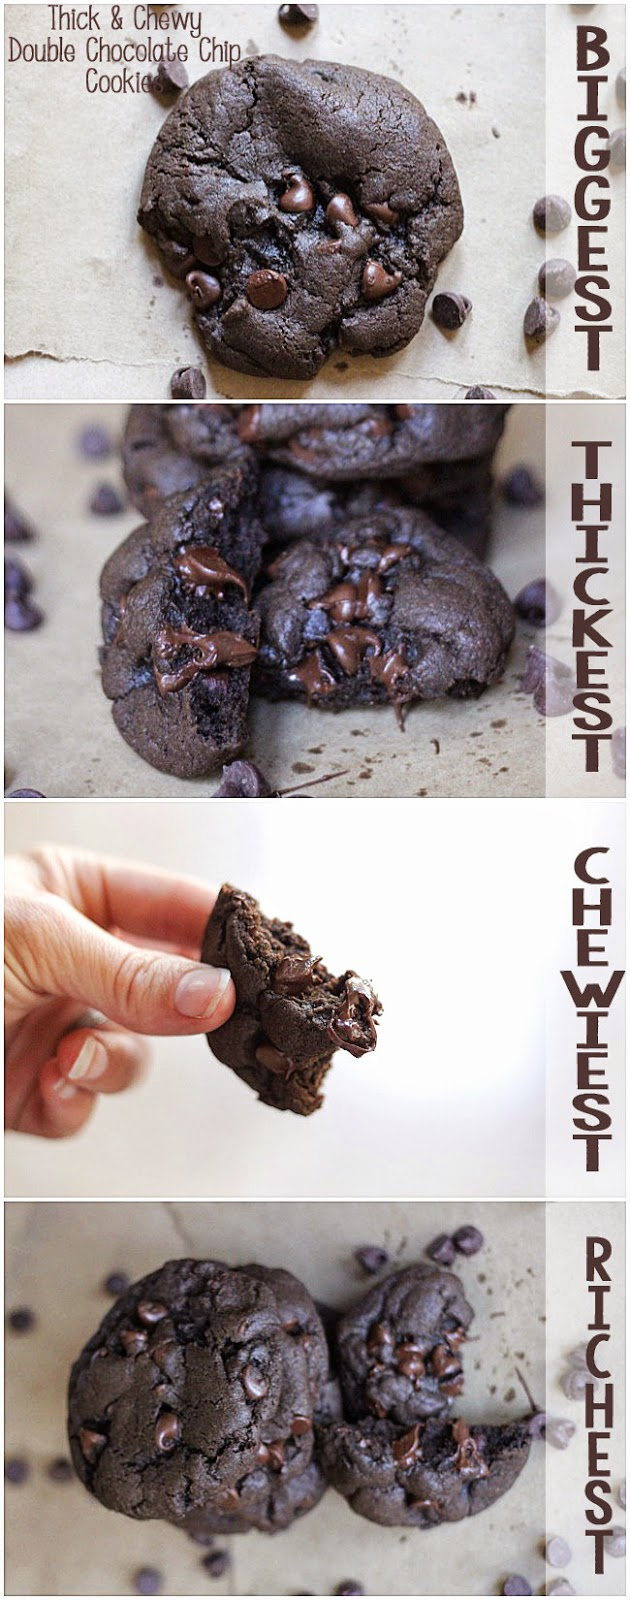 Thickest And Chewiest Double Chocolate Chip Cookies